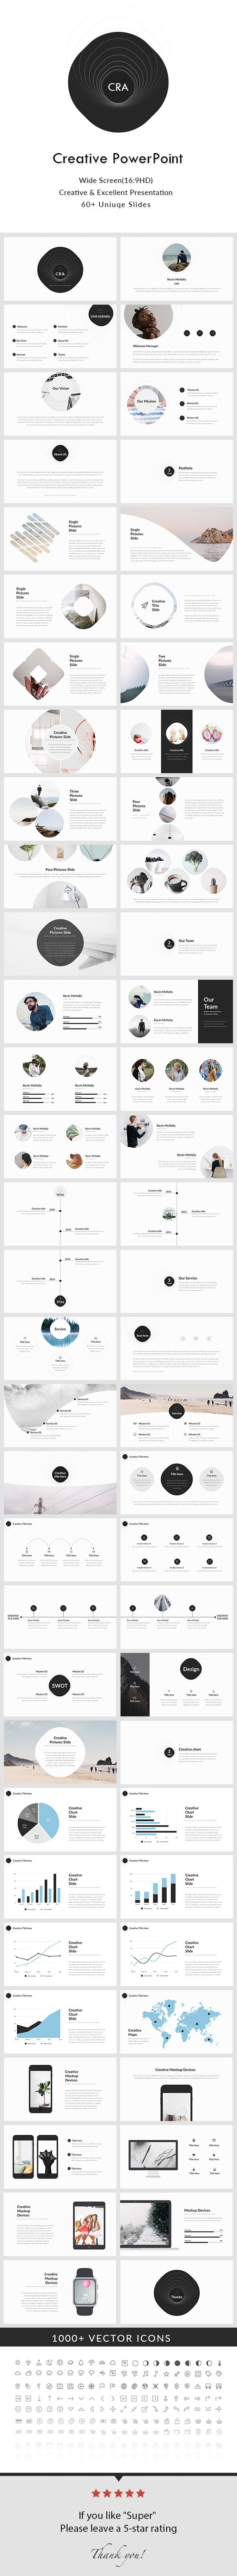 Creative - PowerPoint Presentation Template - Creative PowerPoint Templates